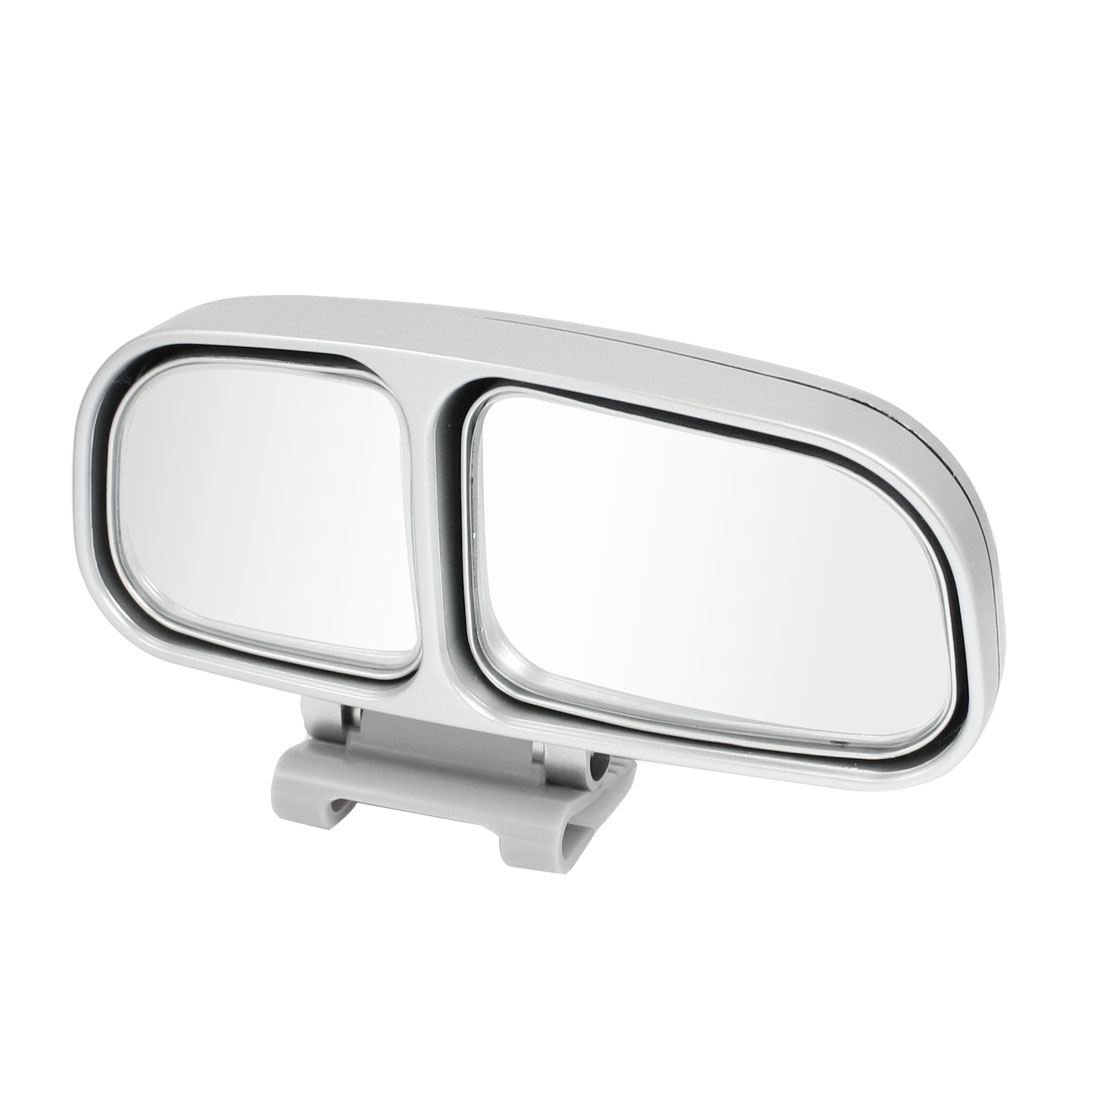 Car Van Truck Right Rearview Dual Adjustable Blind Spot Mirror Silver Tone